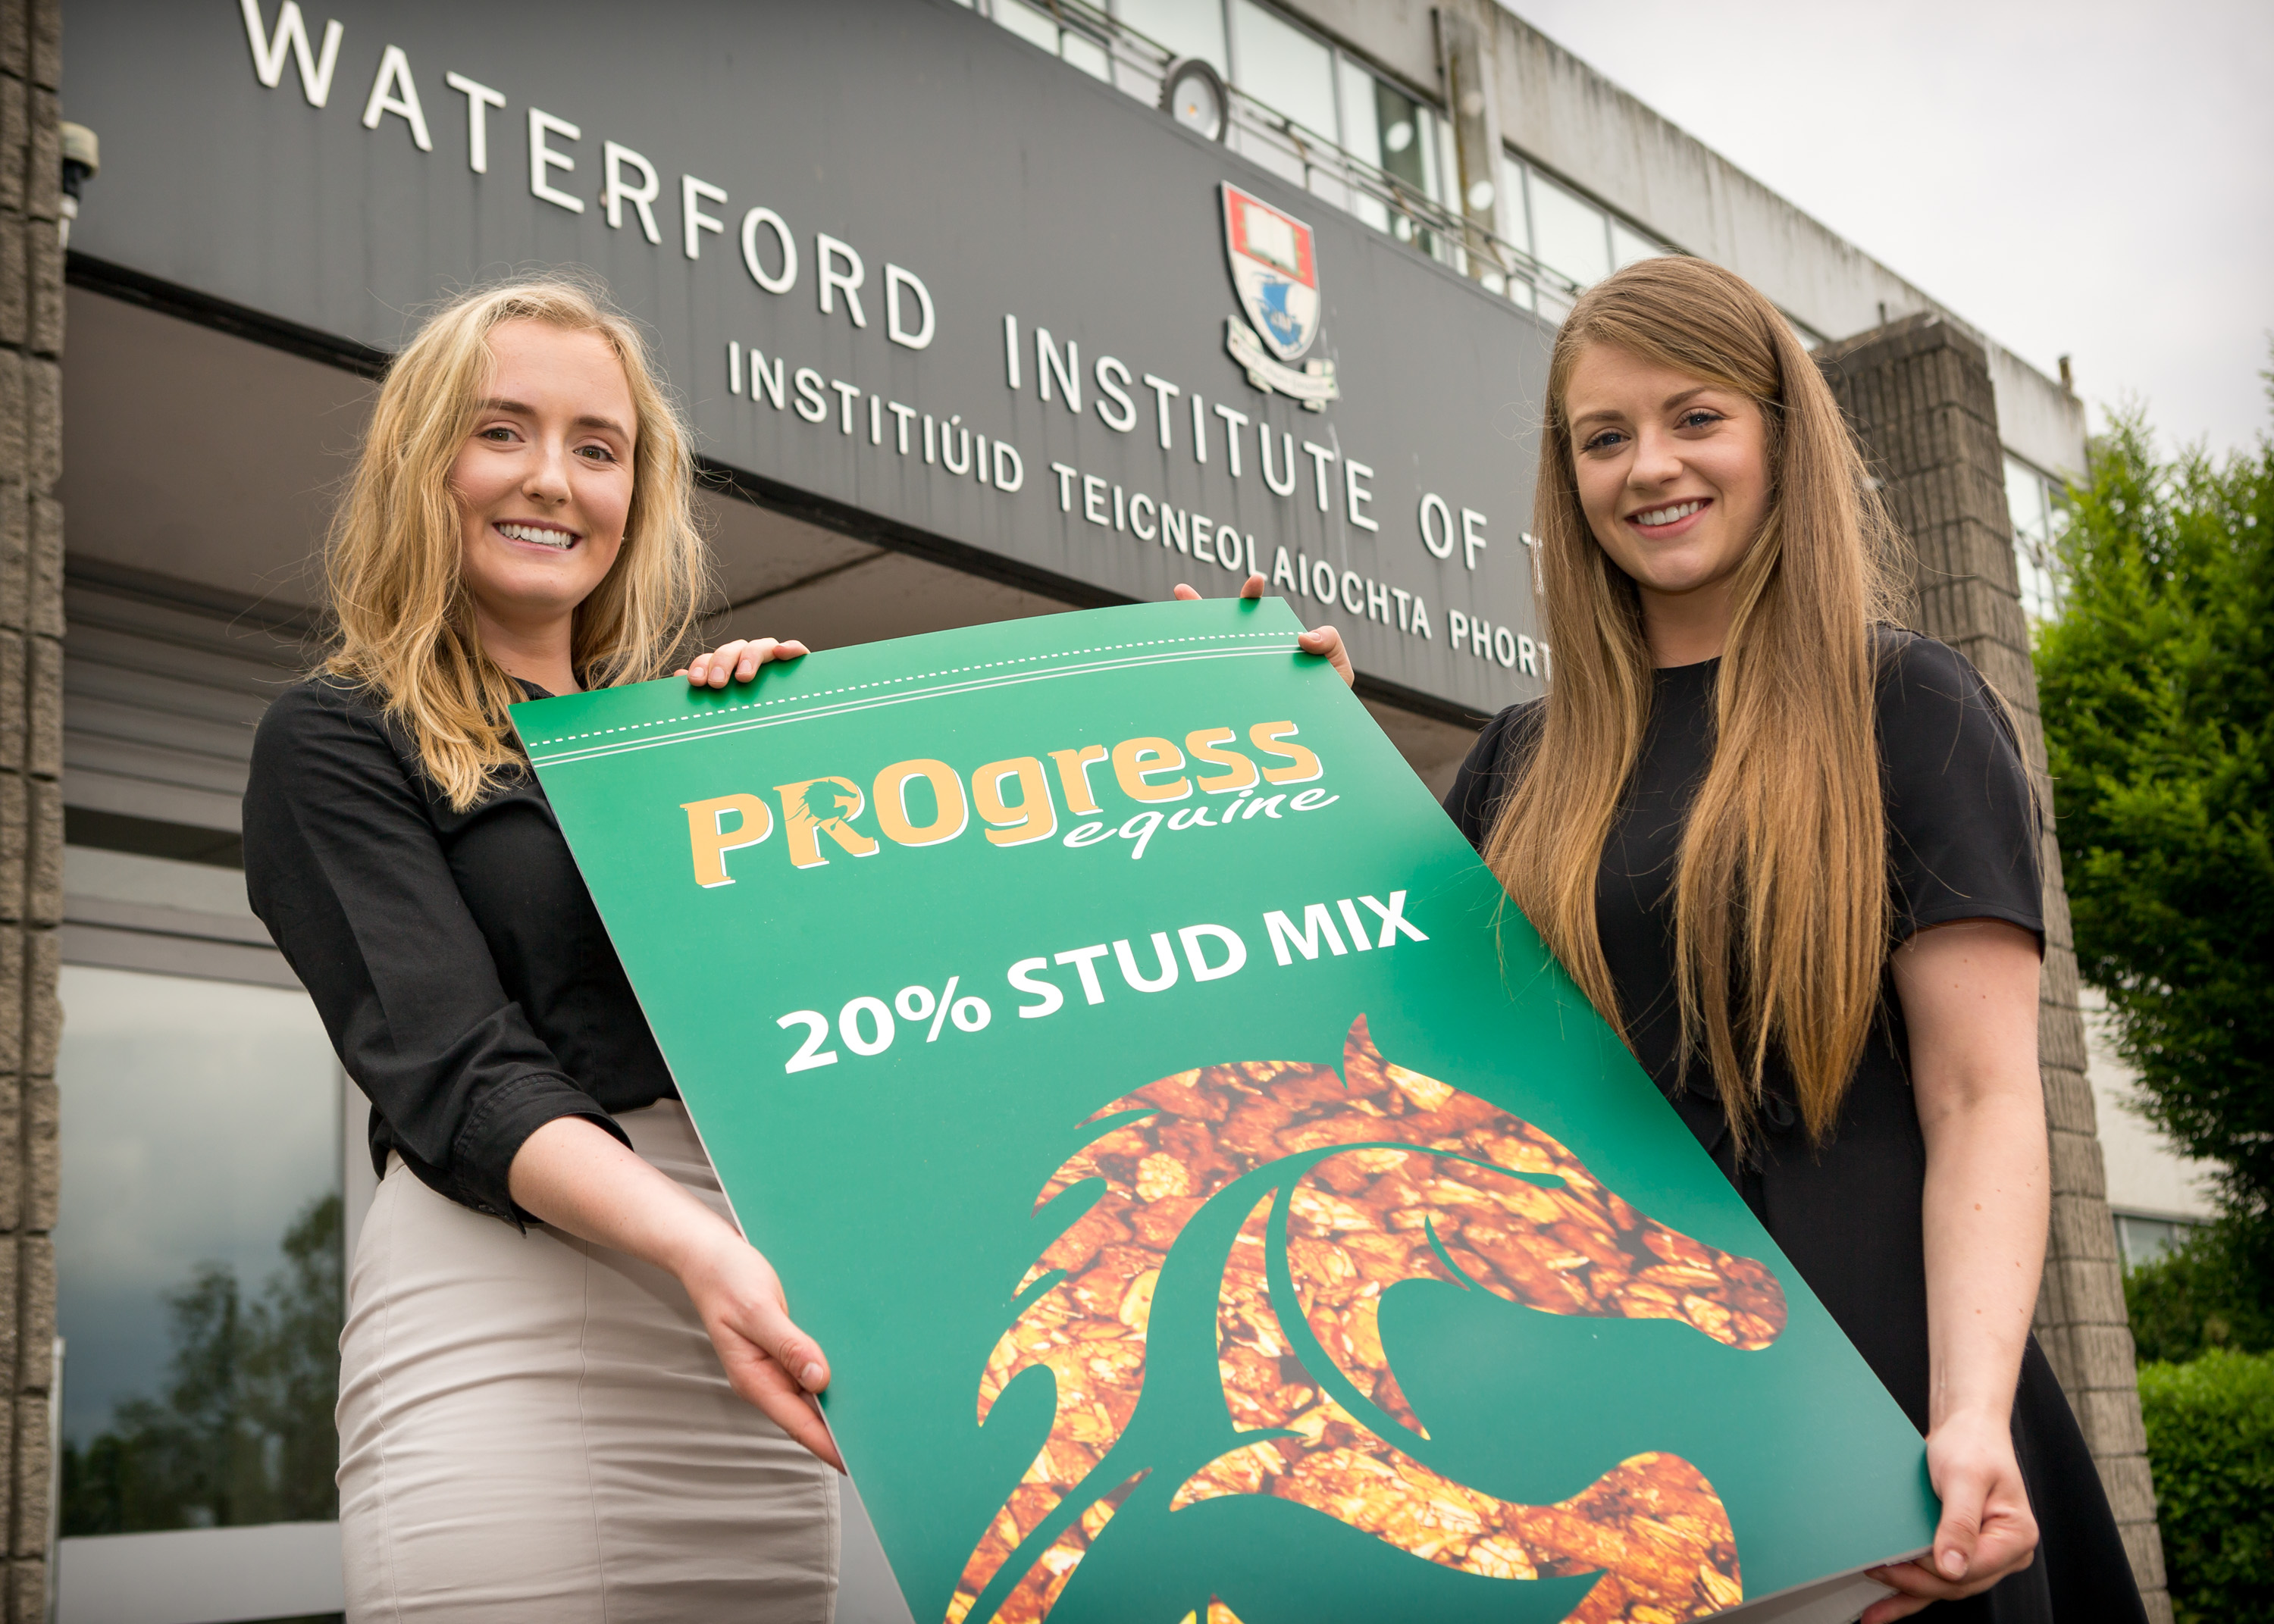 WIT Student Lorna Power from Lismore Co. Waterford (right) pictured with her business partner, Emma Murphy from Cashel, Co Tipperary (left) in advance of the final of the Enterprise Ireland Student Entrepreneur Awards